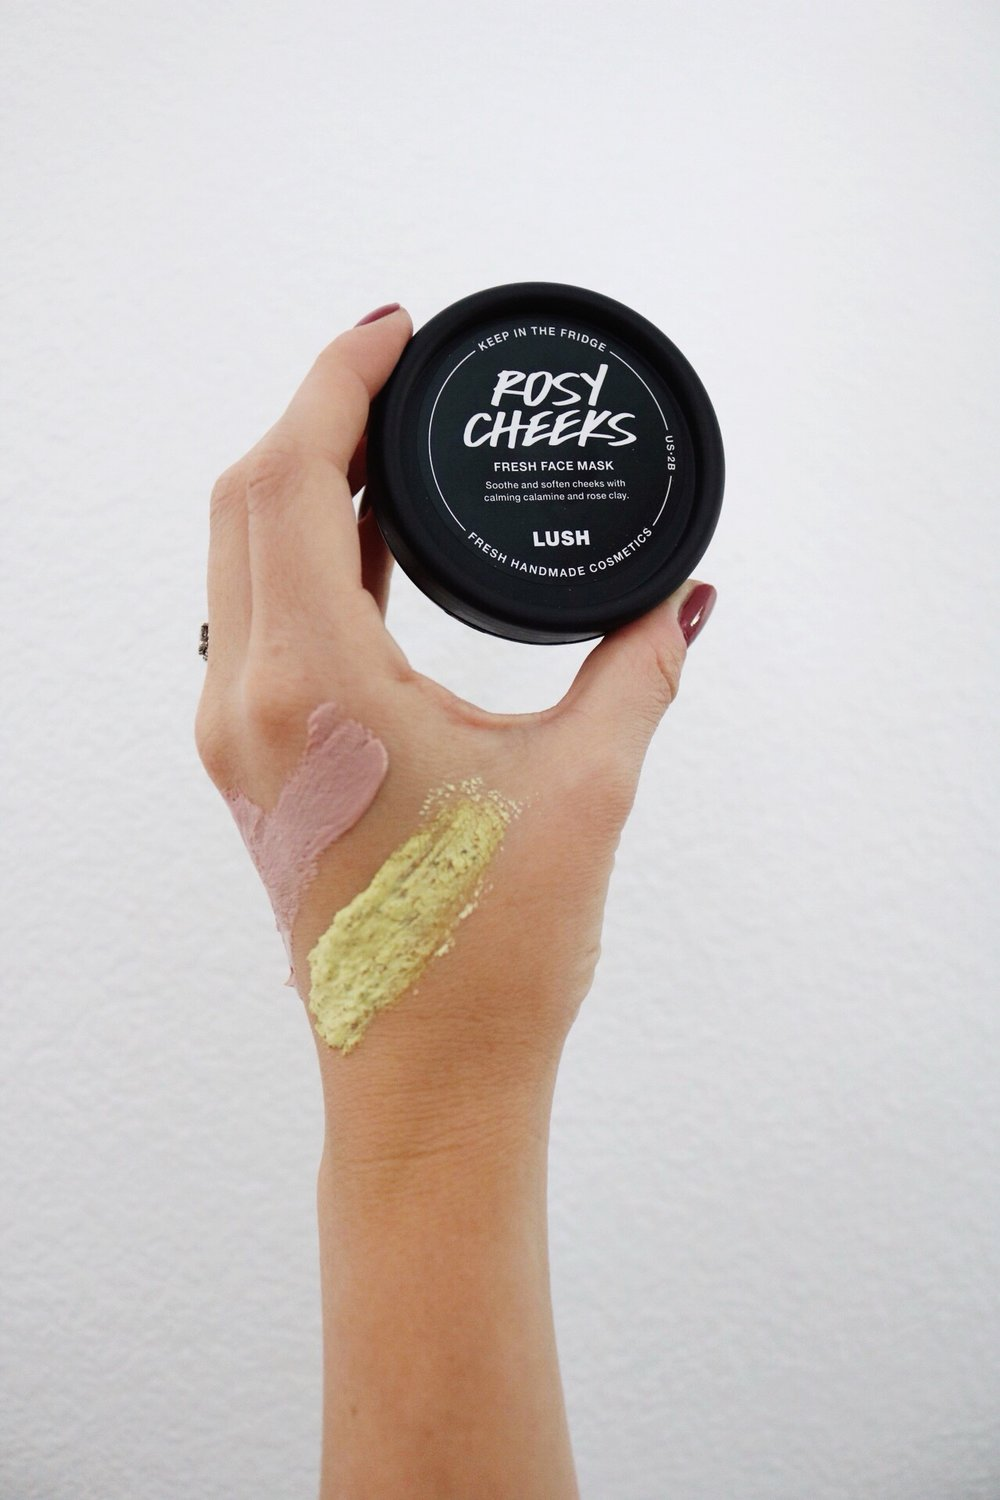 Lush Cosmetics, Fresh Face Masks, Face Mask Swatches, Rosy Cheeks, Cruelty Free Cosmetics, Skin Care